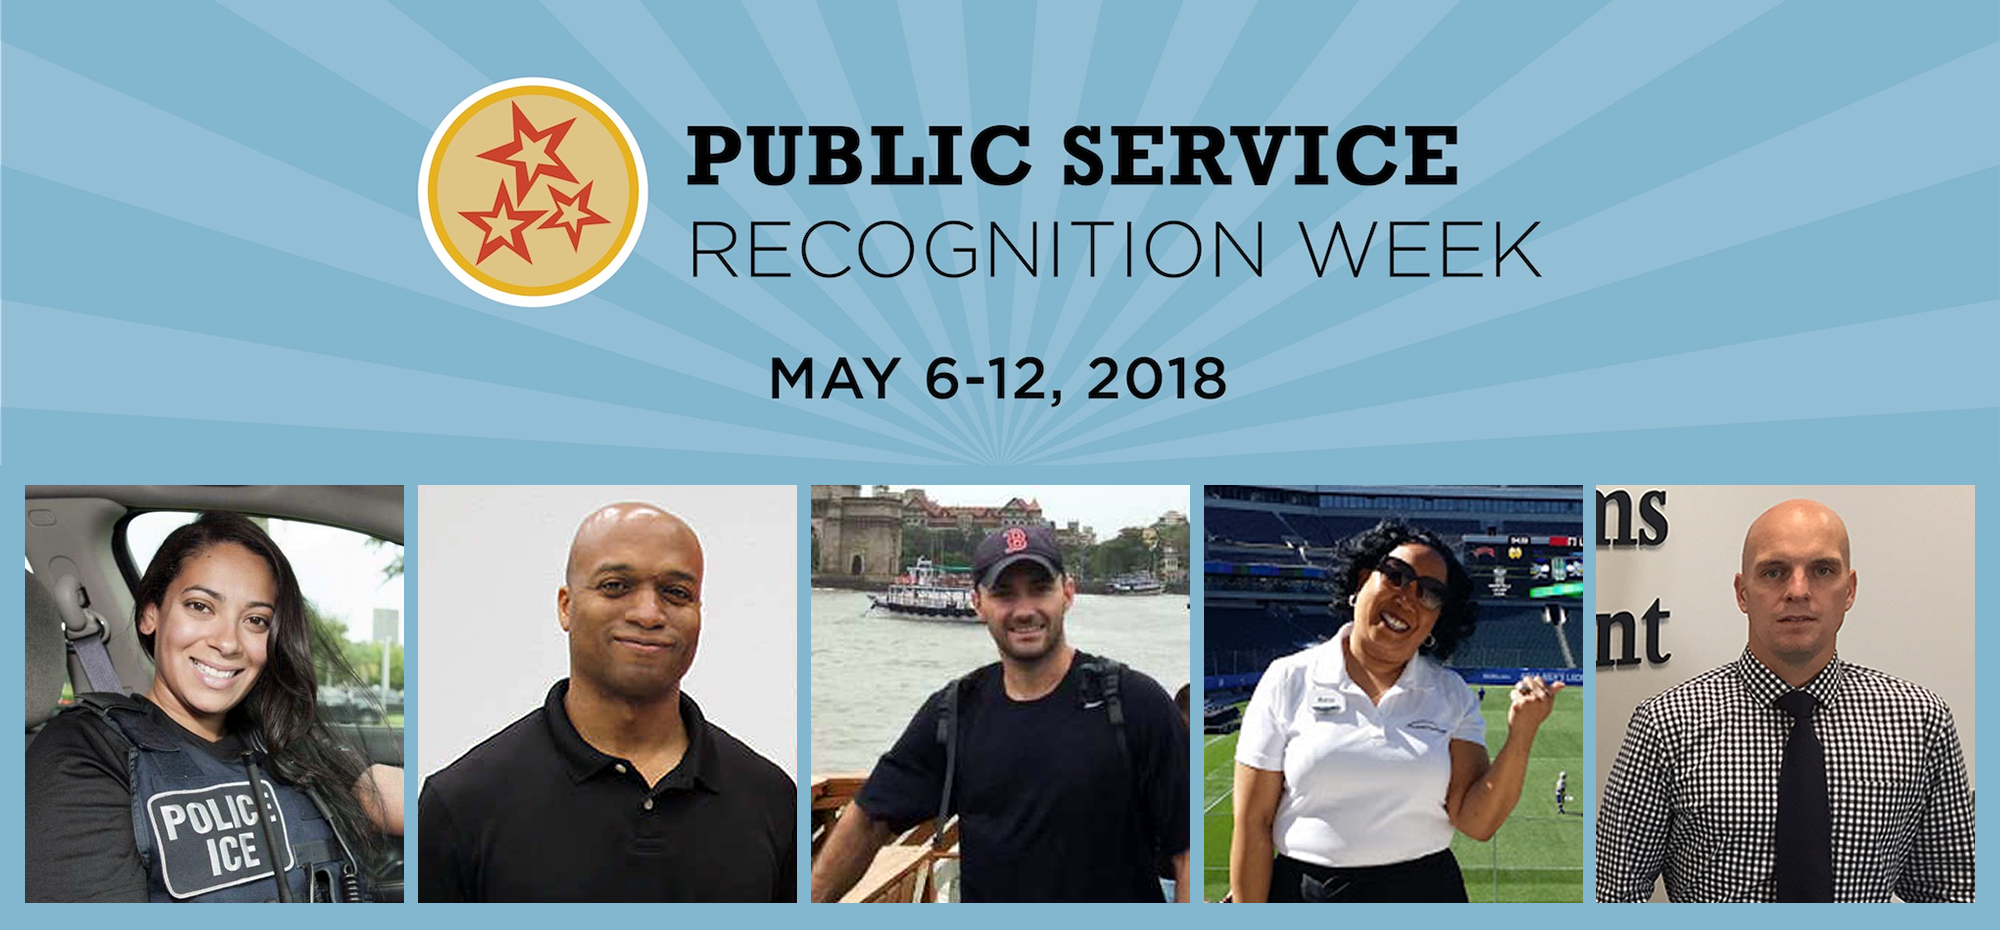 Public Service Recognition Week 2018